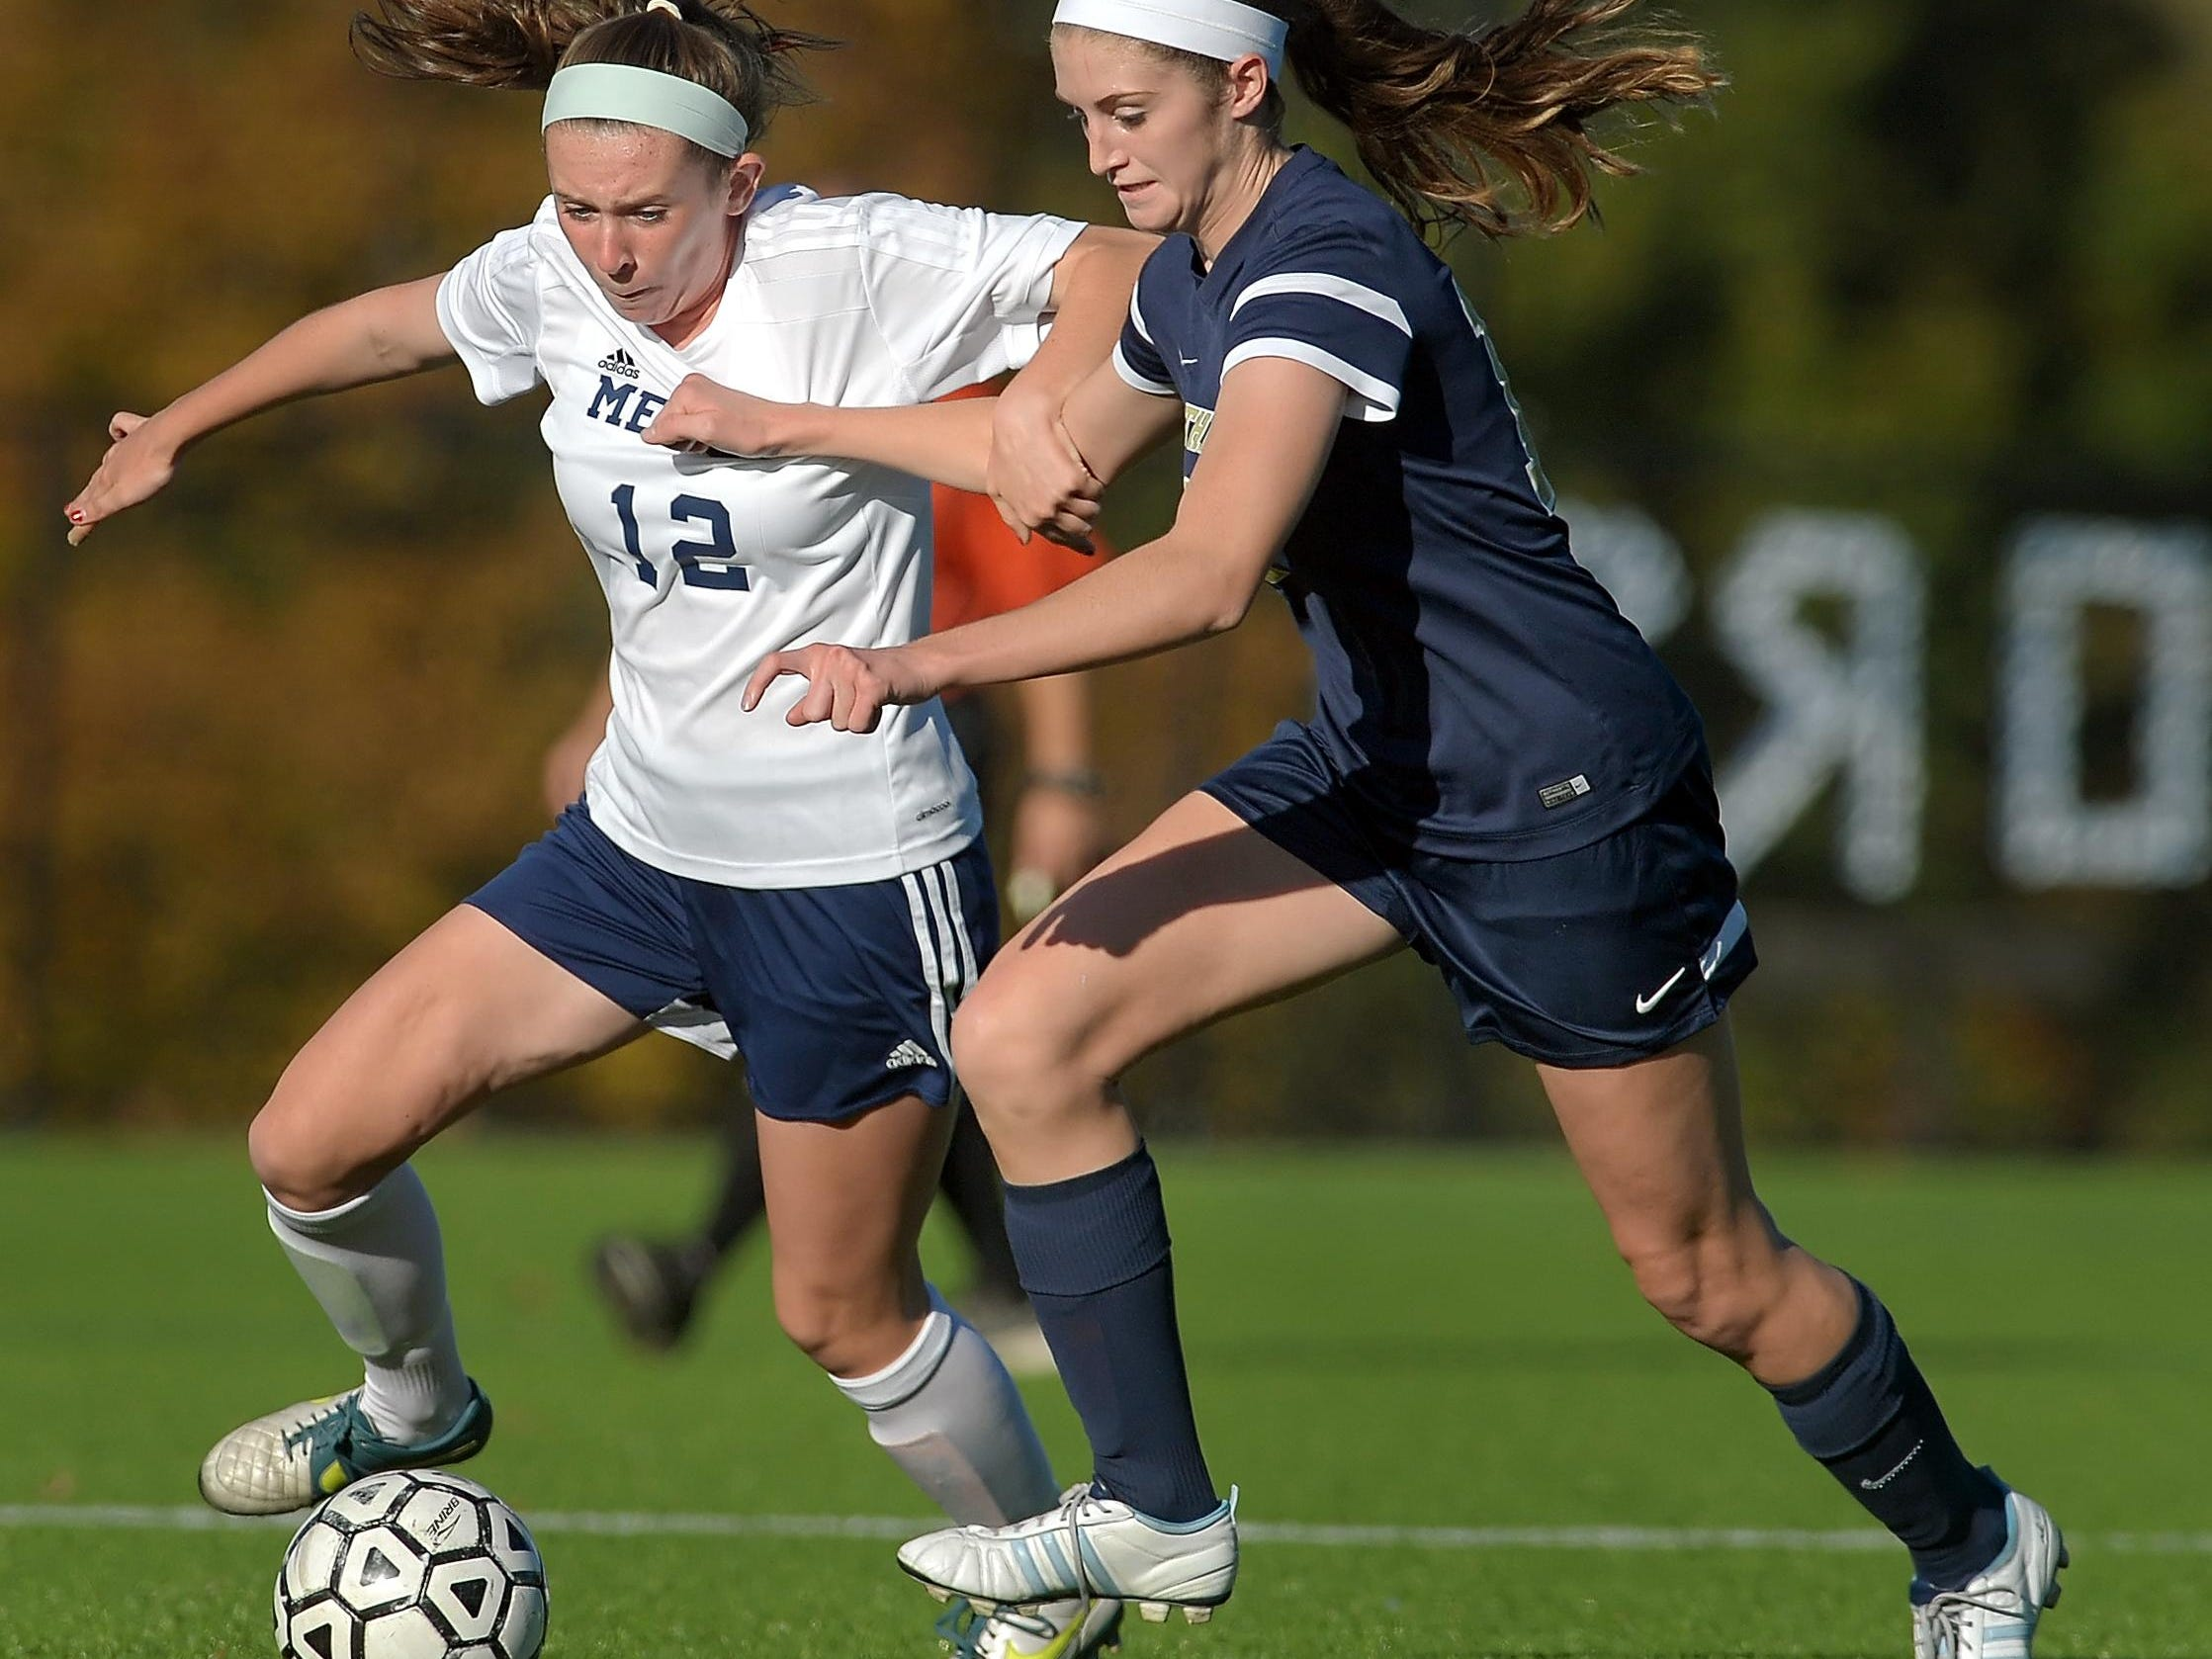 Mercy's Elizabeth Glynn, left, and Pittsford Sutherland's Emily Marshall chase a loose ball during a regular season game played at Our Lady of Mercy High School on Monday, October 12, 2015. Pittsford Sutherland beat Mercy 2-0.